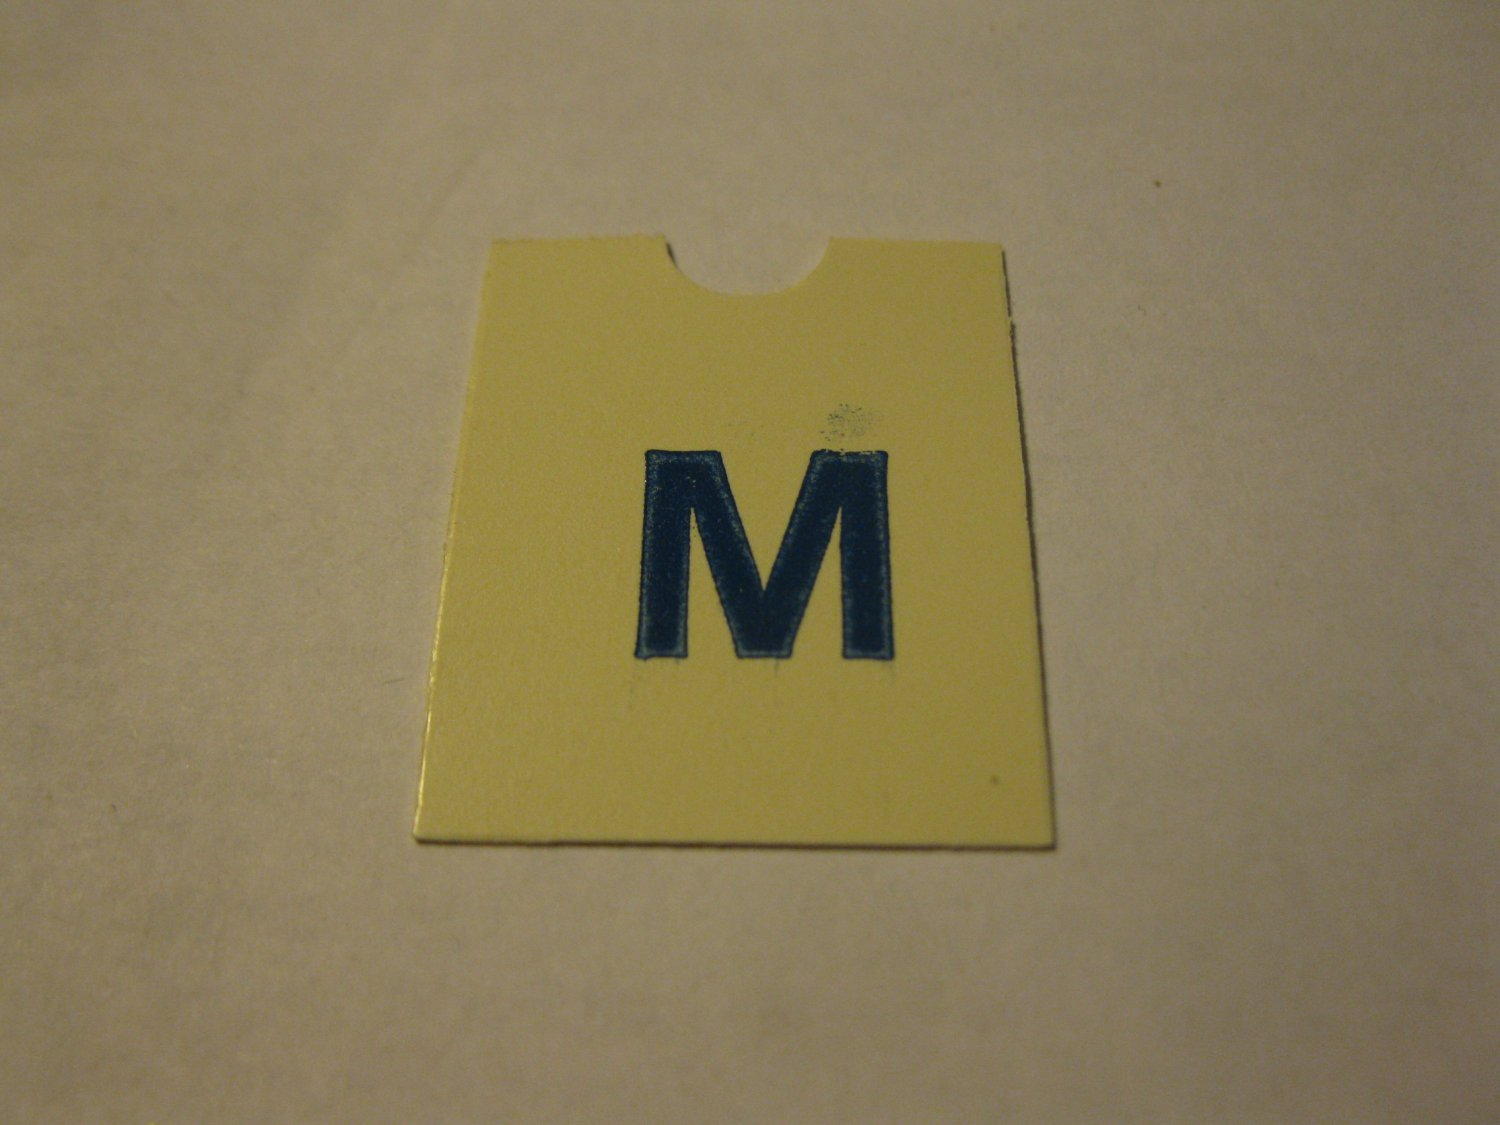 1967 4CYTE Board Game Piece: Blue Letter Tab - M